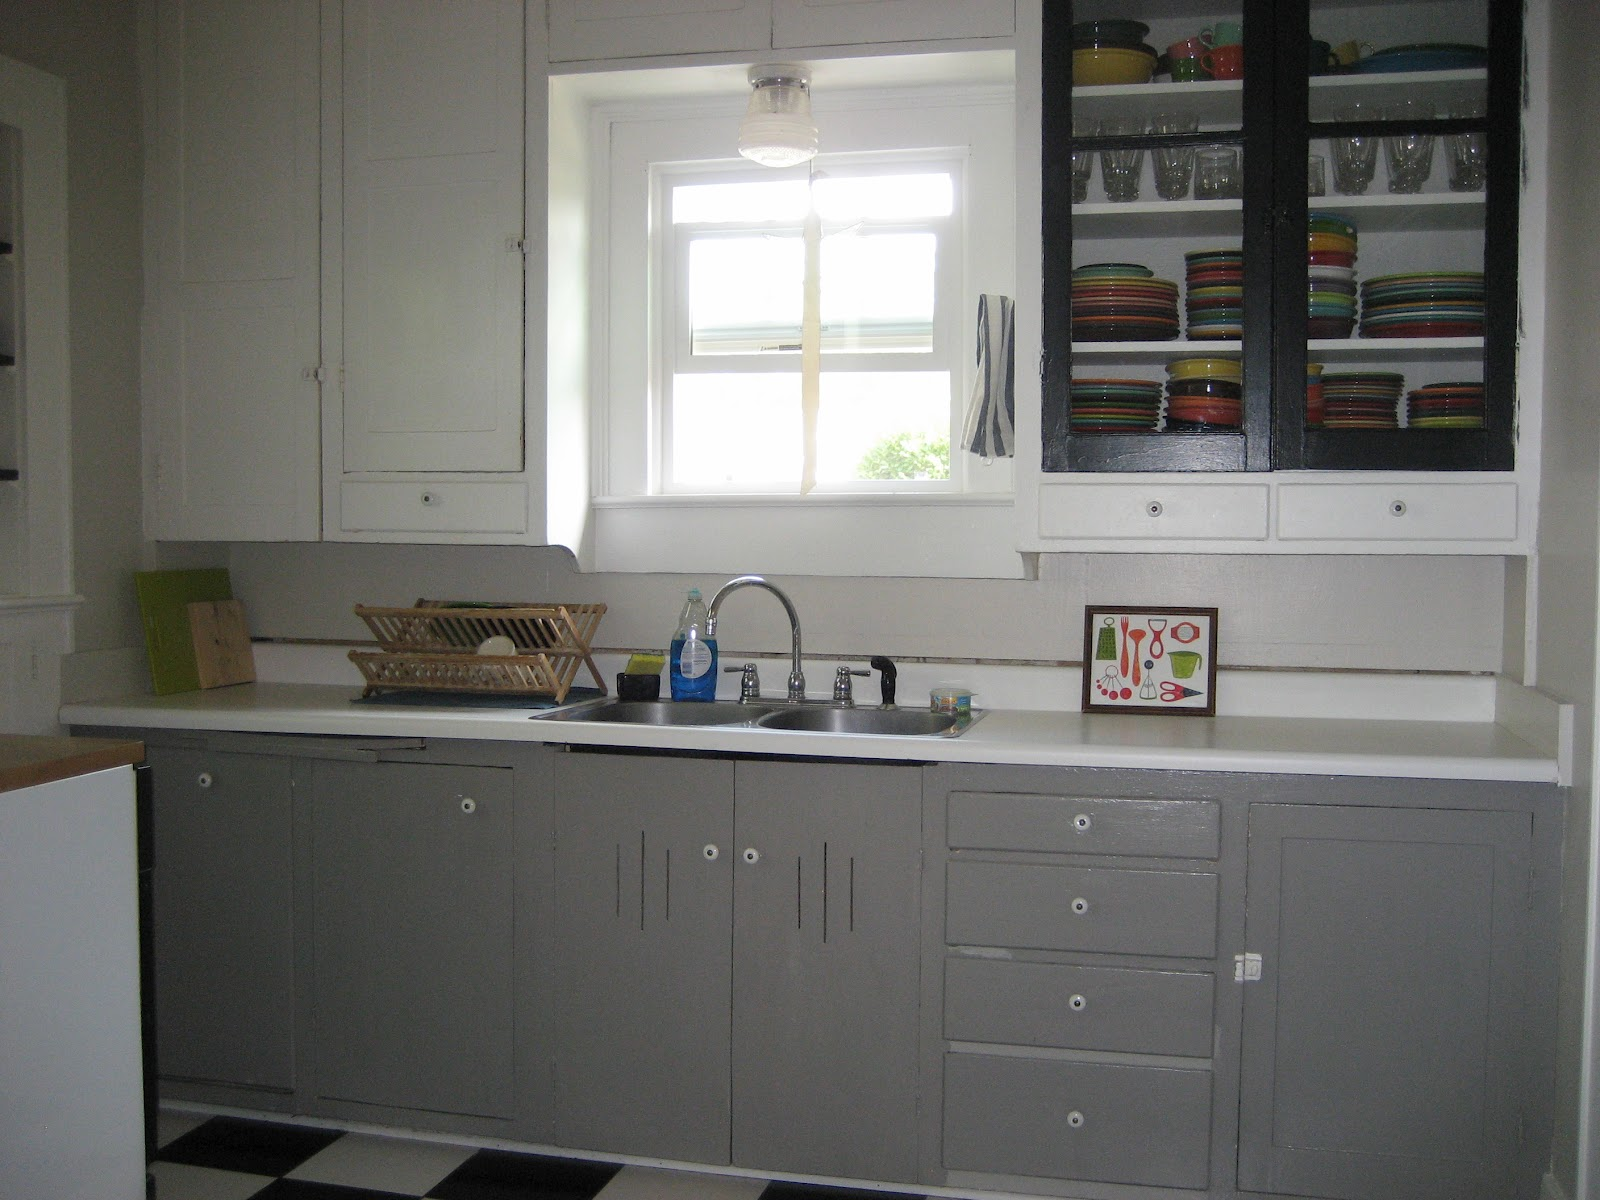 Painted Gray Kitchen Cabinets Lowes Refacing Cleaning